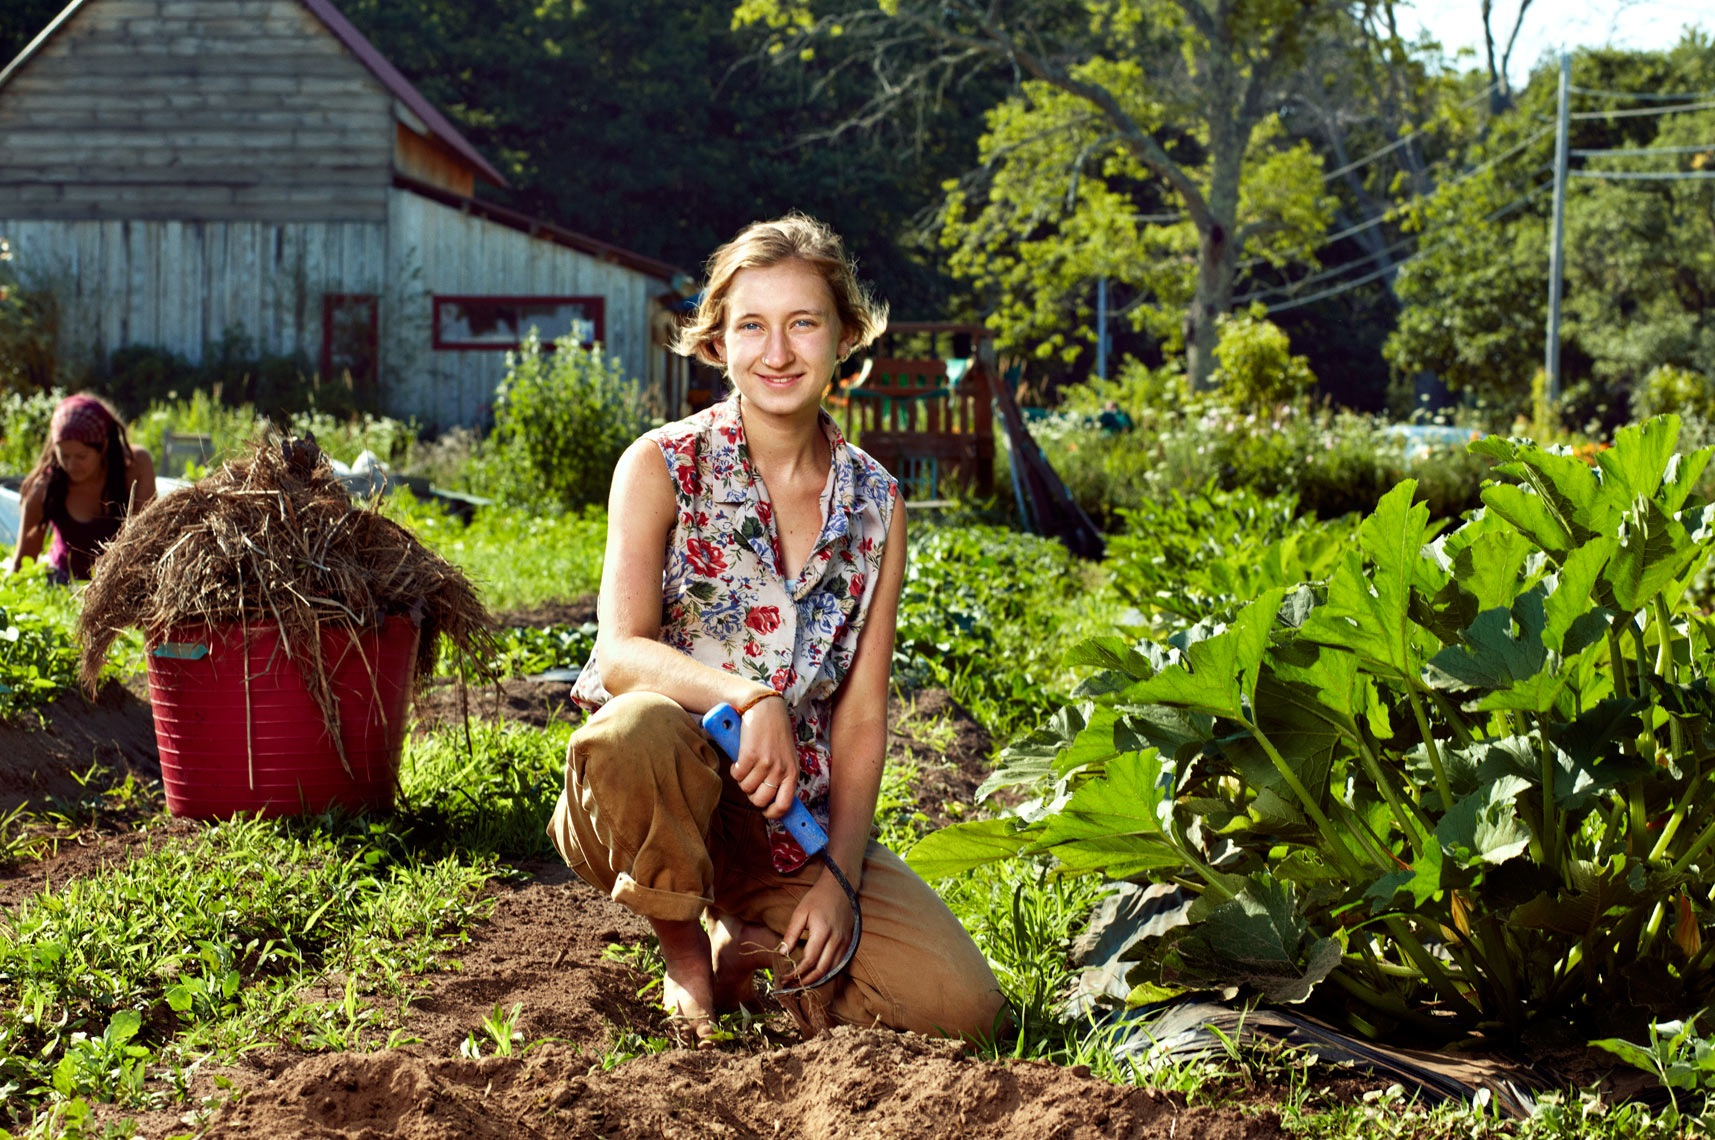 Becca Roe , 22, from Washington, DC, graduated from Middlebury College in 2015   What is your favorite task to do on the farm, and favorite thing to harvest?   I get a weird satisfaction from squishing bugs (especially japanese beetles) and feeding them to the chickens.  I love harvesting onions and scallions, and root veggies of all kinds.   What's your favorite CD to listen to in the greenhouse?   It's a toss-up between Dolly Parton's  The Grass is Blue  and Grateful Dead's  Reckoning    Why did you do this apprenticeship?   Ultimately I want to work with food in some capacity — perhaps through urban agricultural initiatives or farm-to-school programs — so I think understanding how organic food is grown is an important step.   Fun facts:  I get very squeaky hiccups nearly every day, and I'm a burgeoning craft beer snob. I'm also cultivating a newfound appreciation for very twangy bluegrass.   Spirit veg:  radish